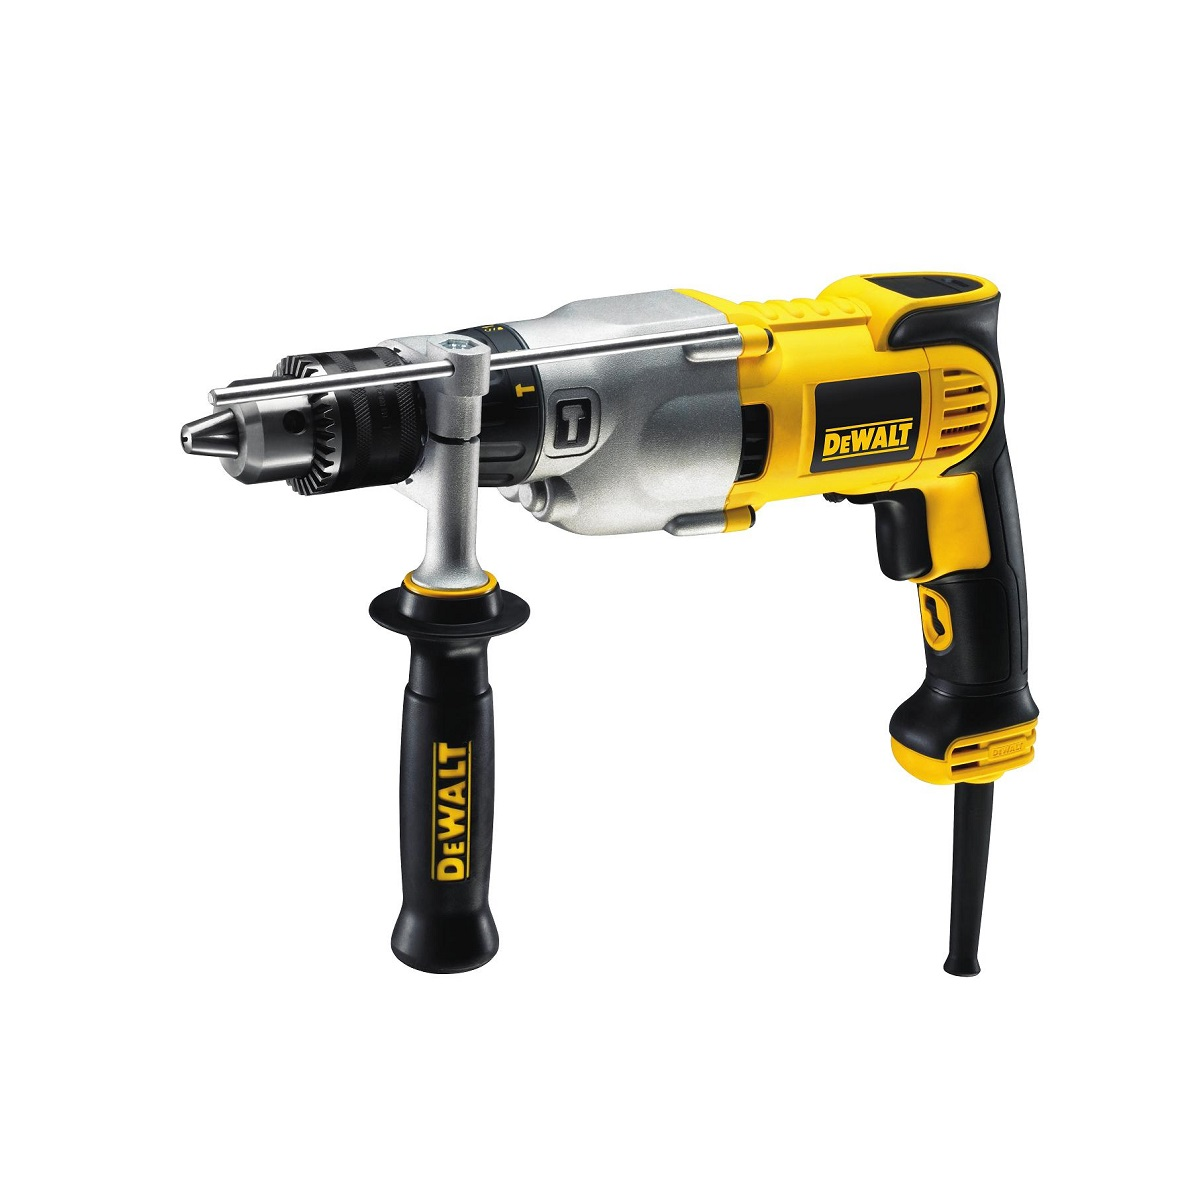 DEWALT D21570K-GB DIAMOND CORE DRILL 240V